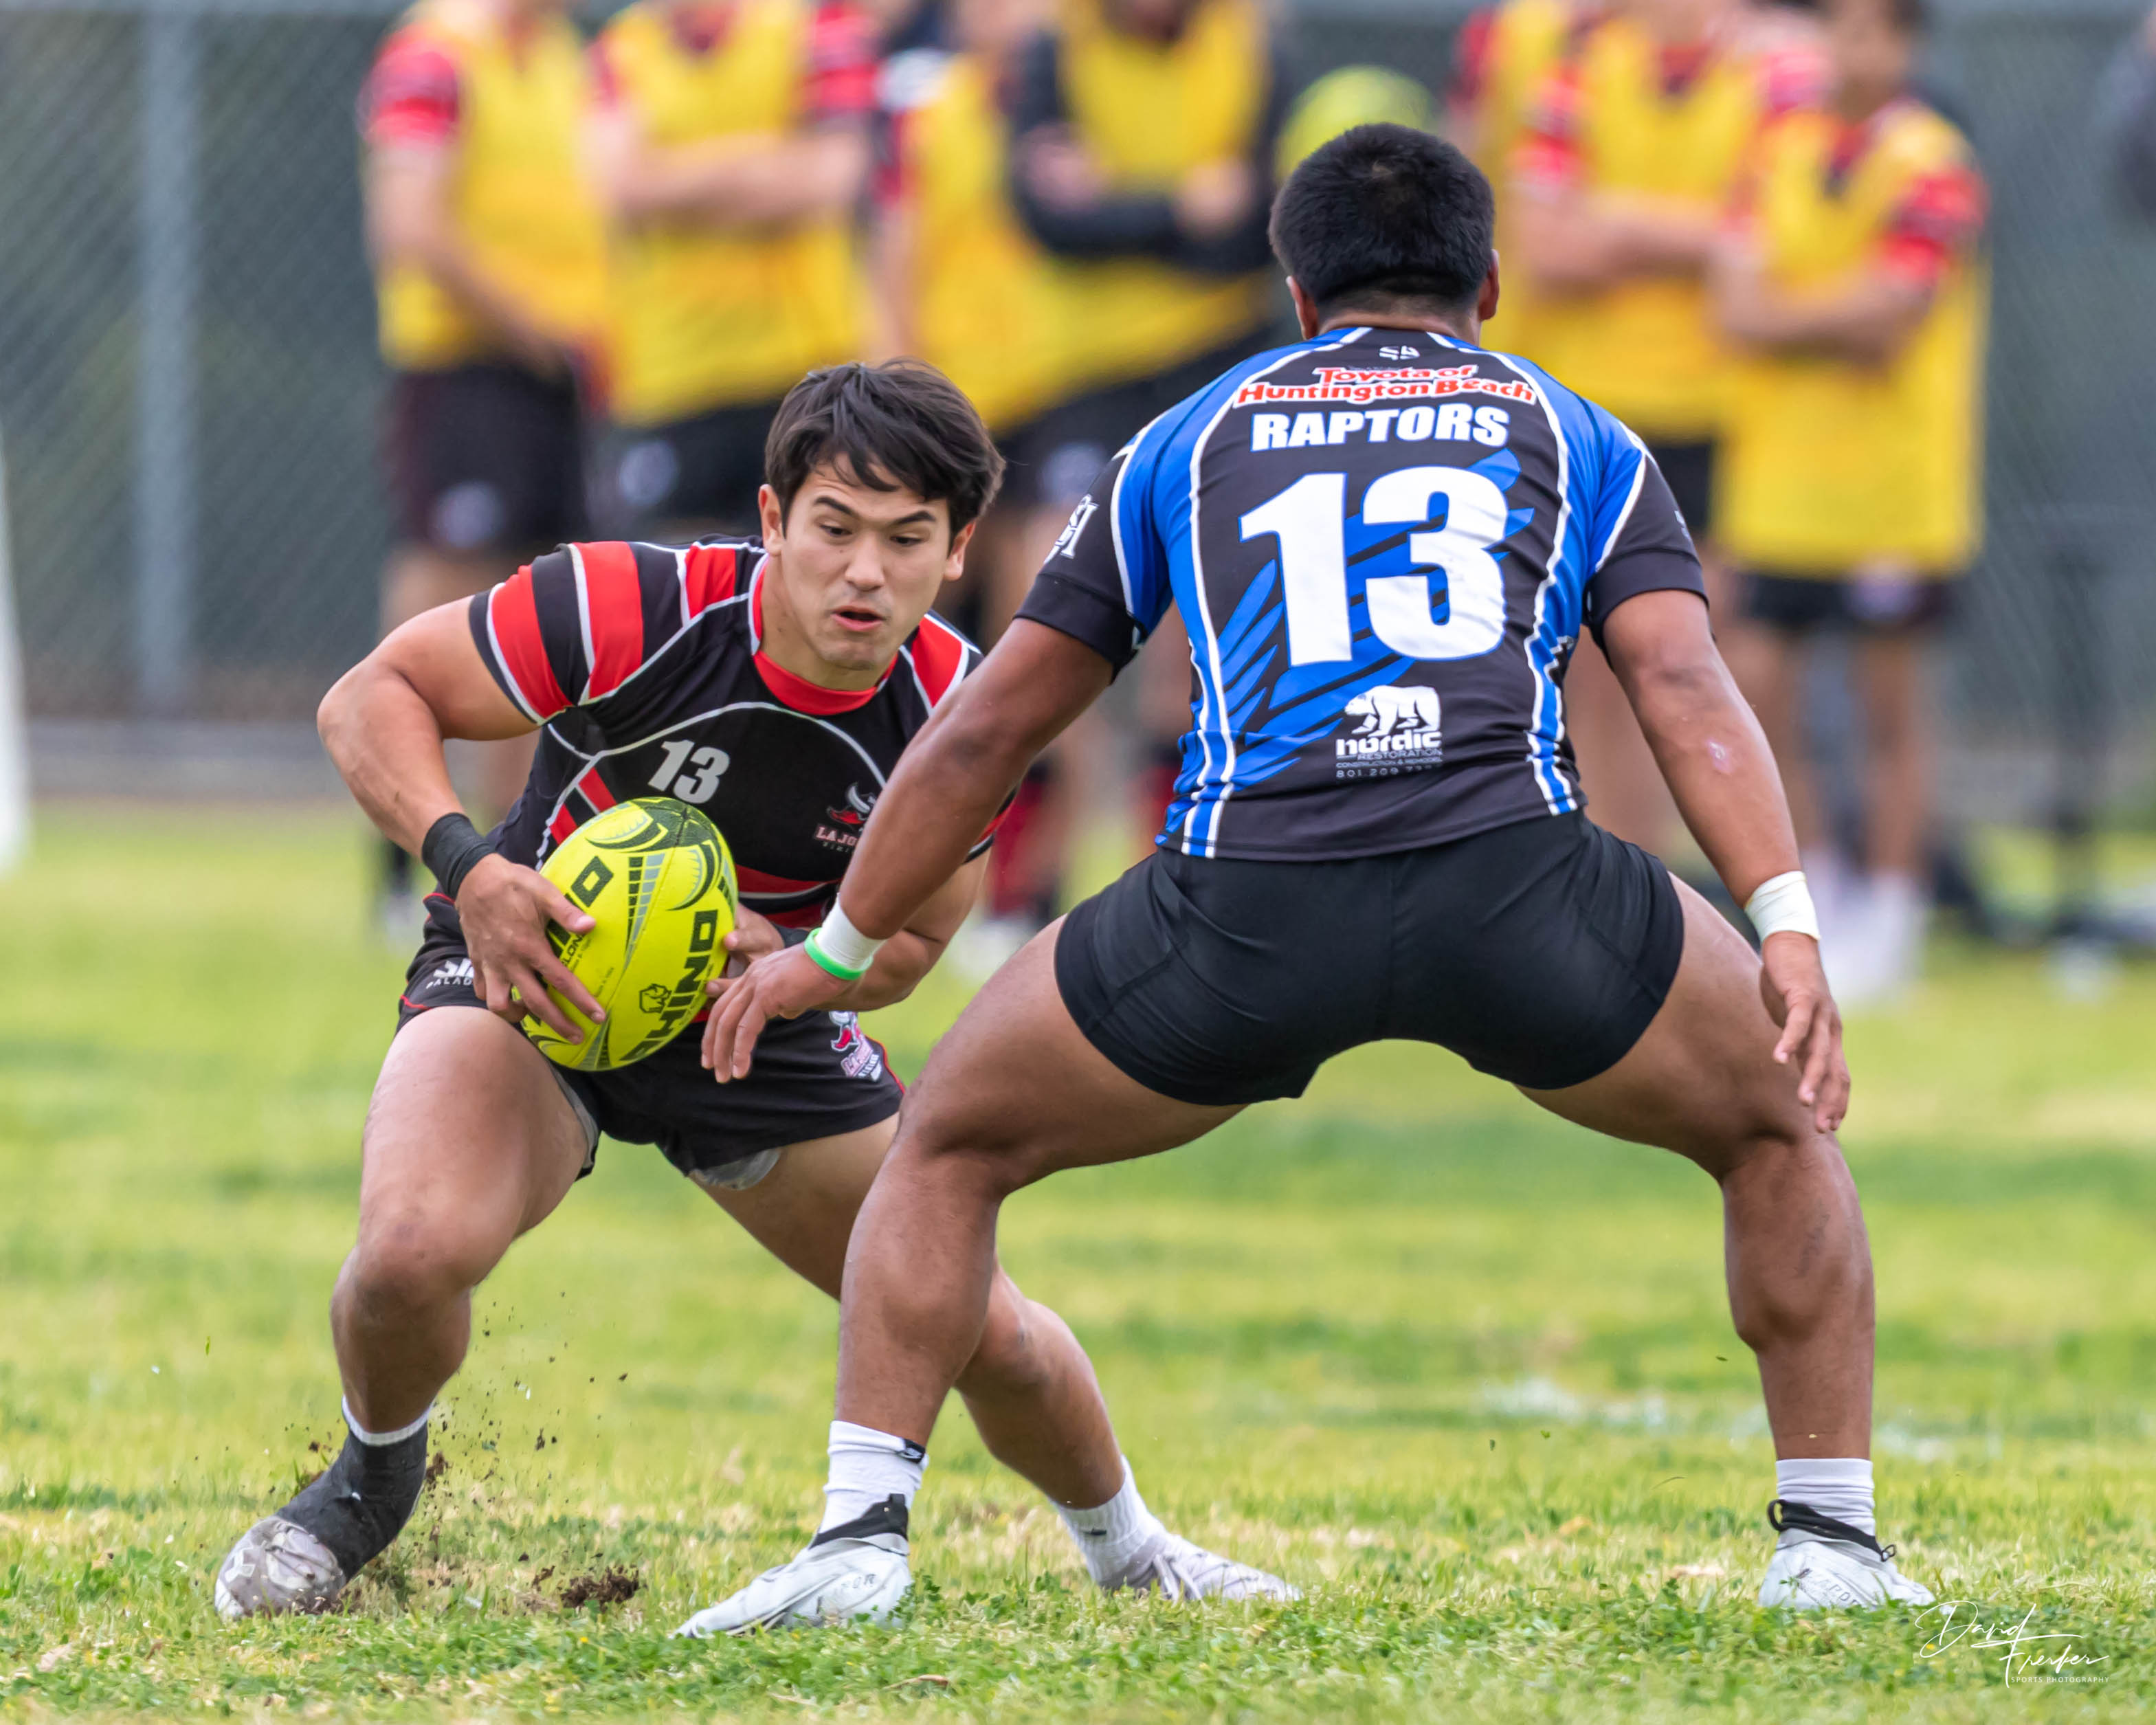 LaJollaRugby14